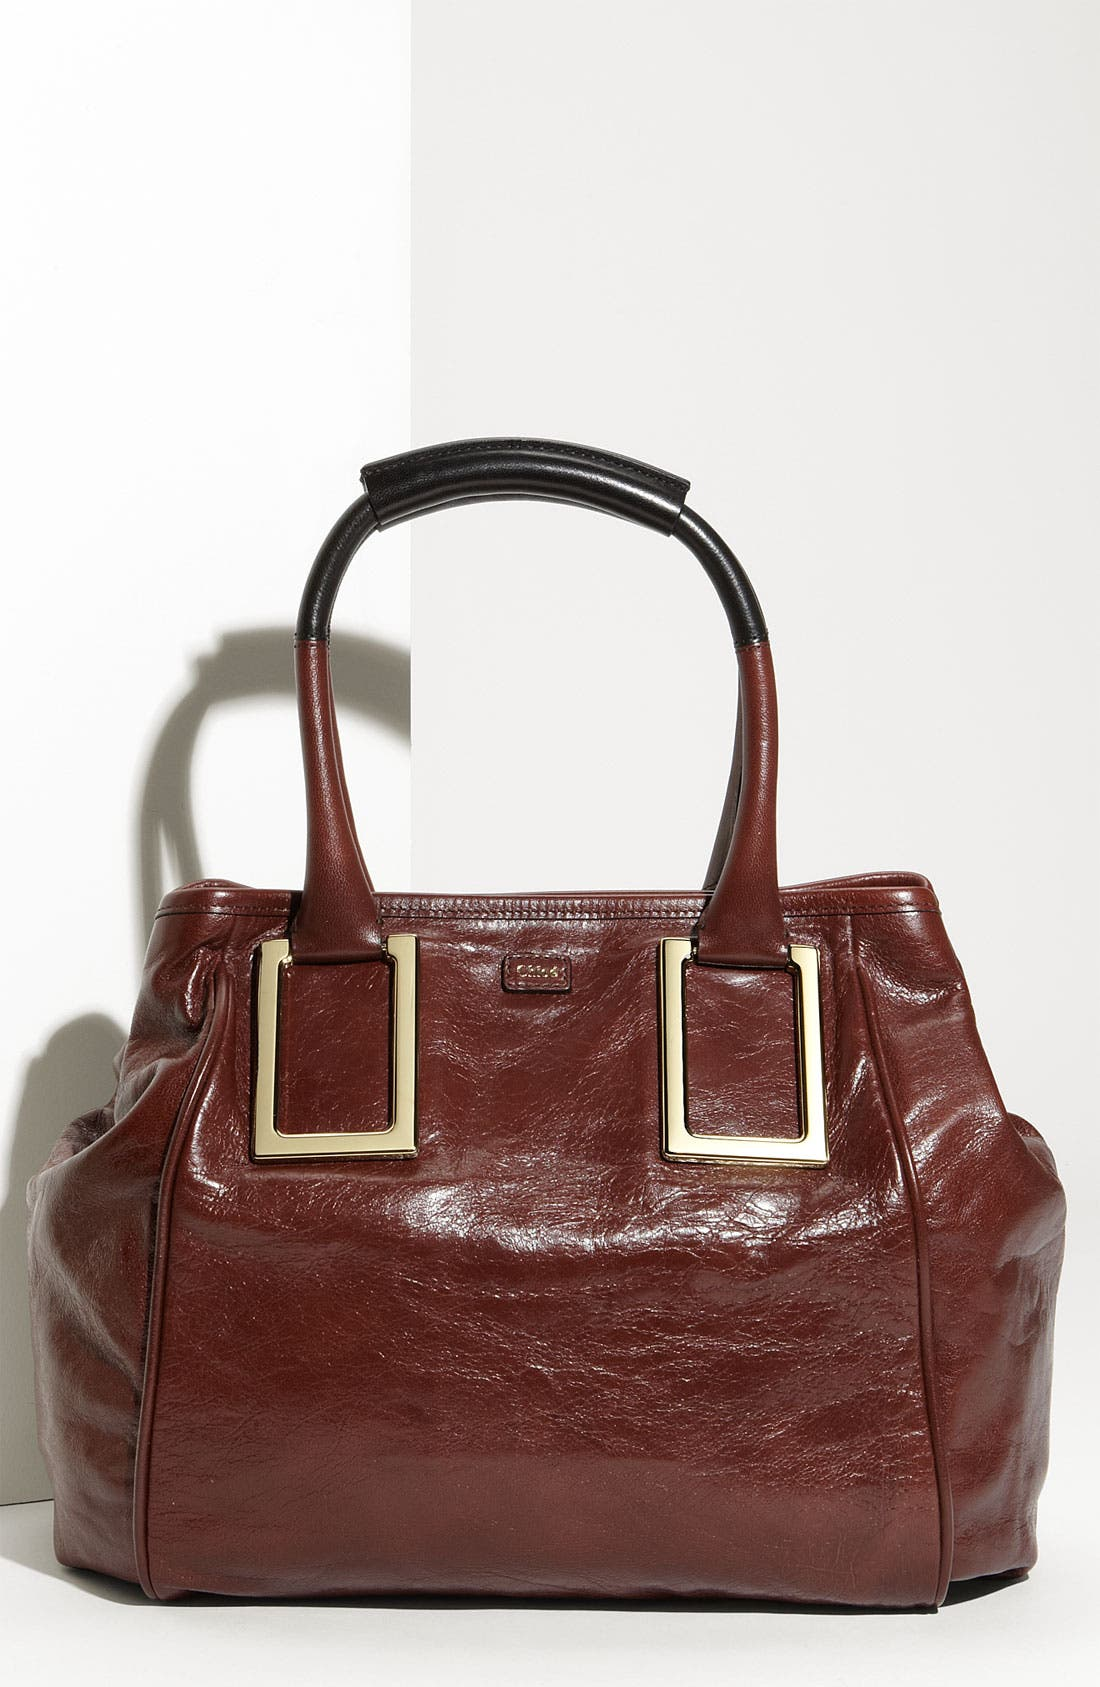 Main Image - Chloé 'Ethel - New' Leather Tote